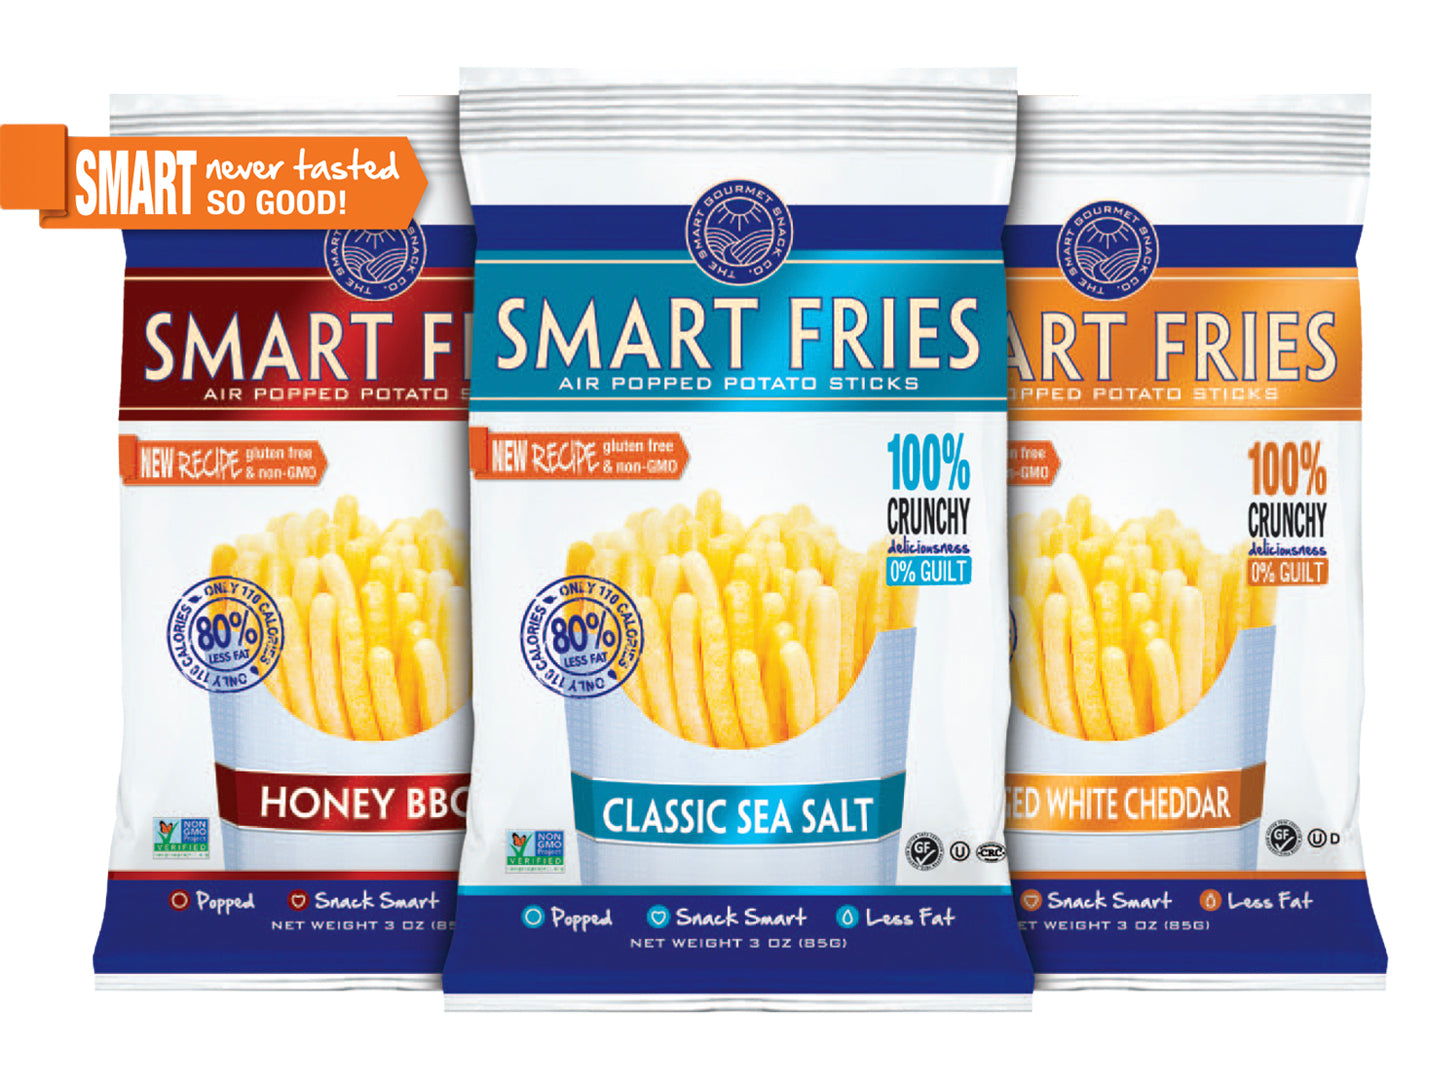 Case of Smart Fries